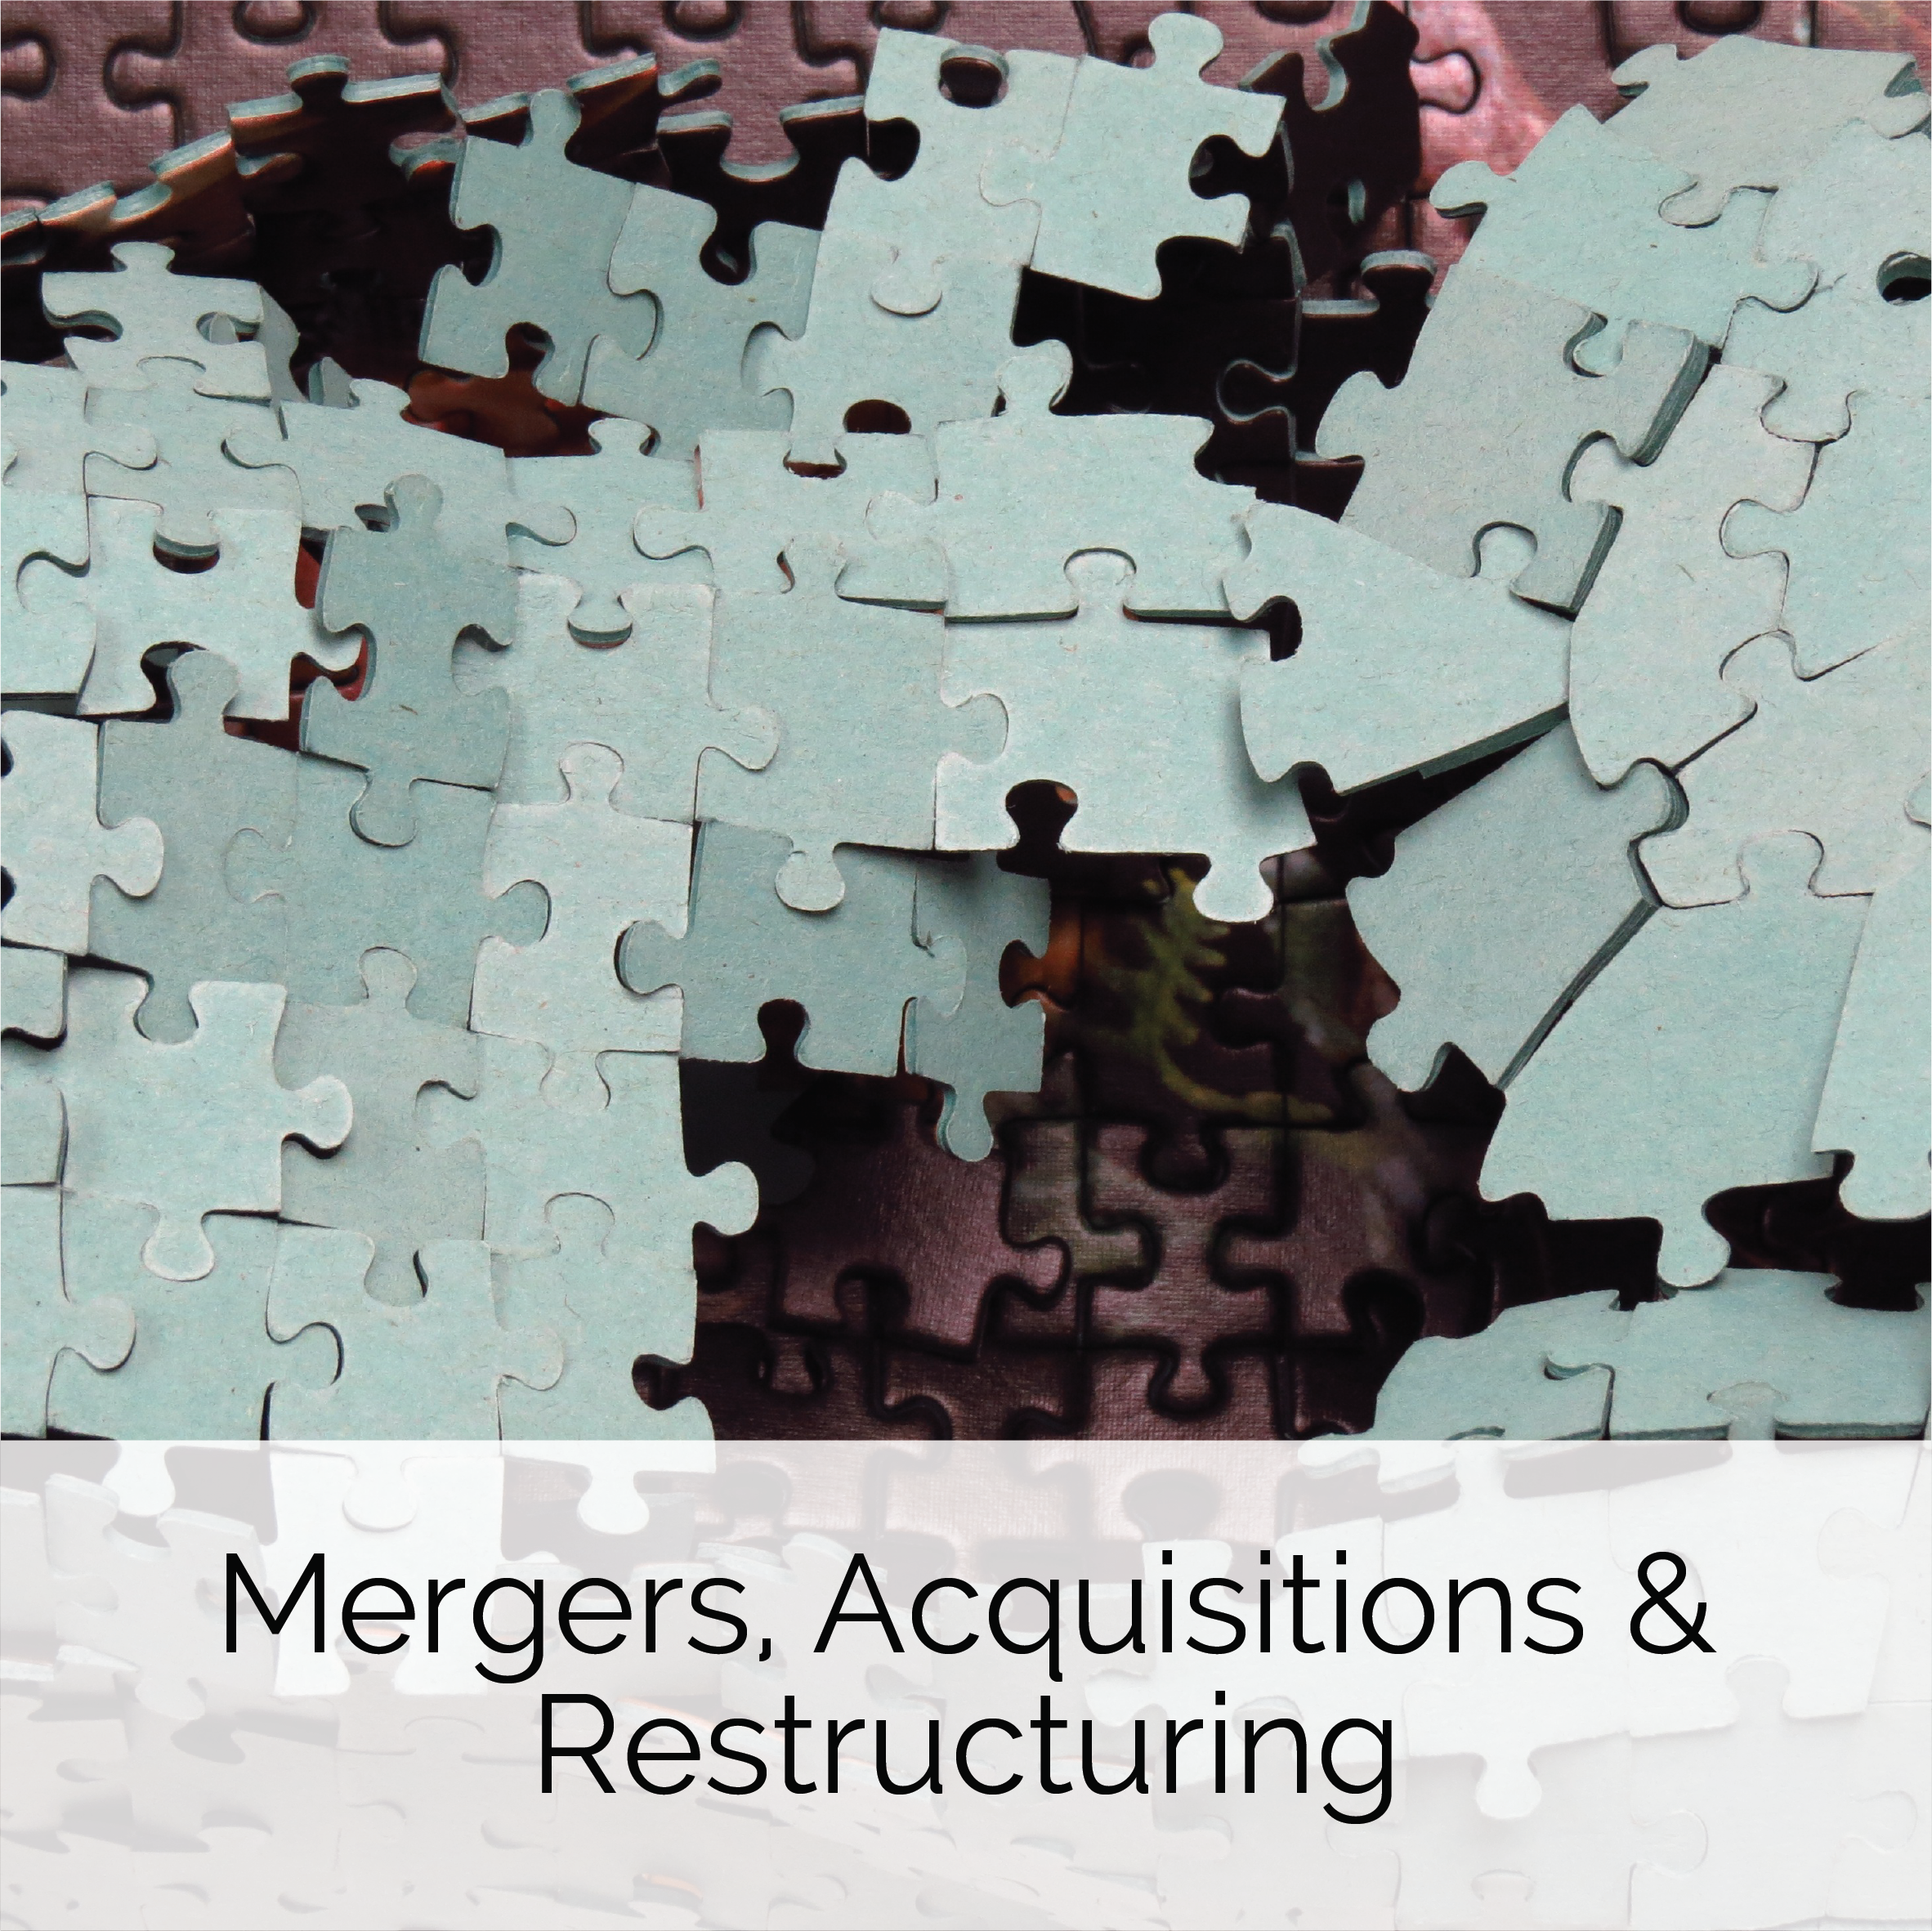 Mergers, Acquisitions & Restructuring.png